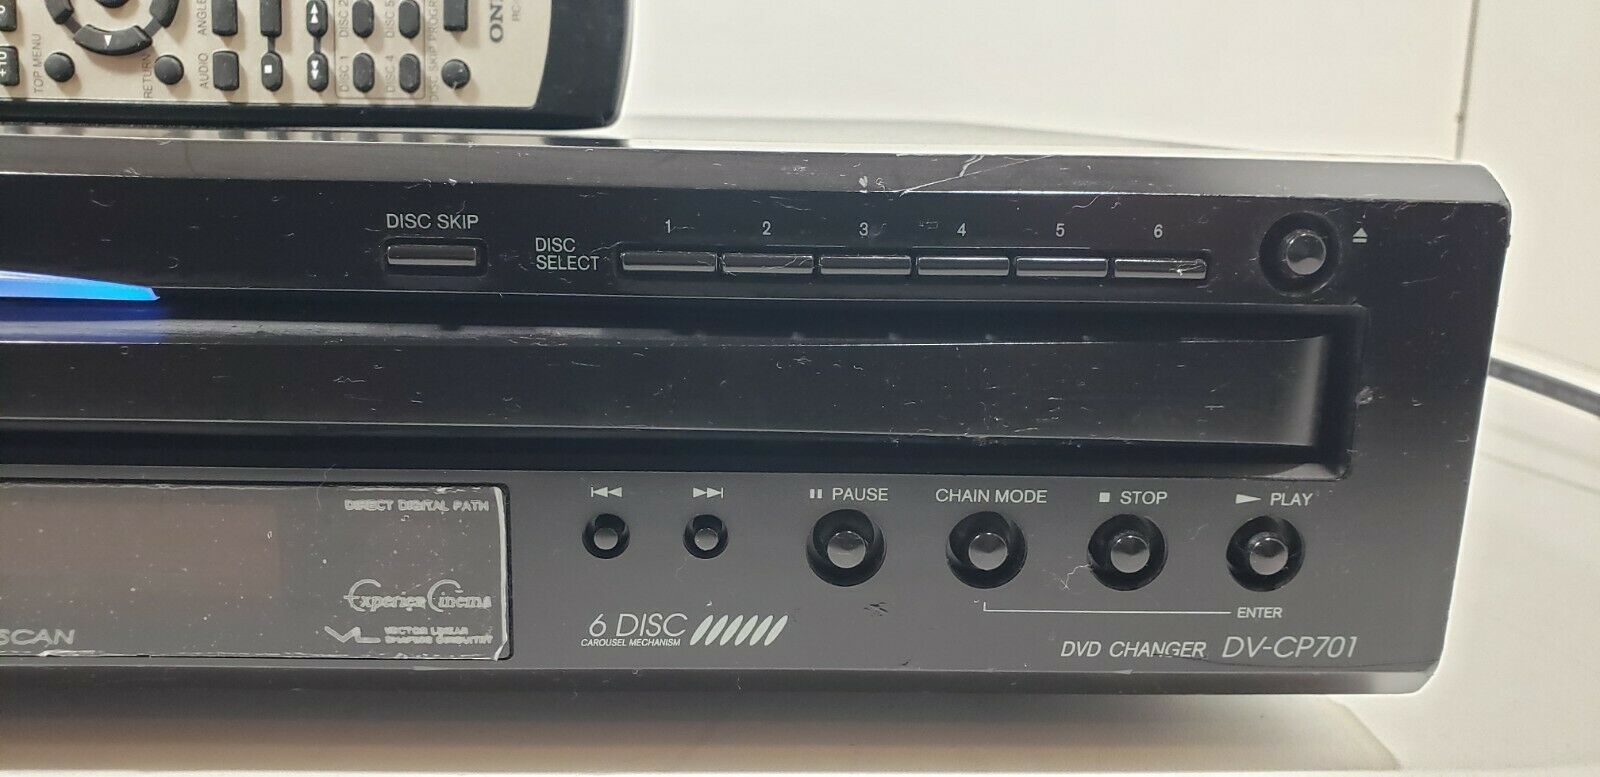 Onkyo 6 Disc Carousel DVD/ CD Changer DV-CP701 with Remote Tested image 2